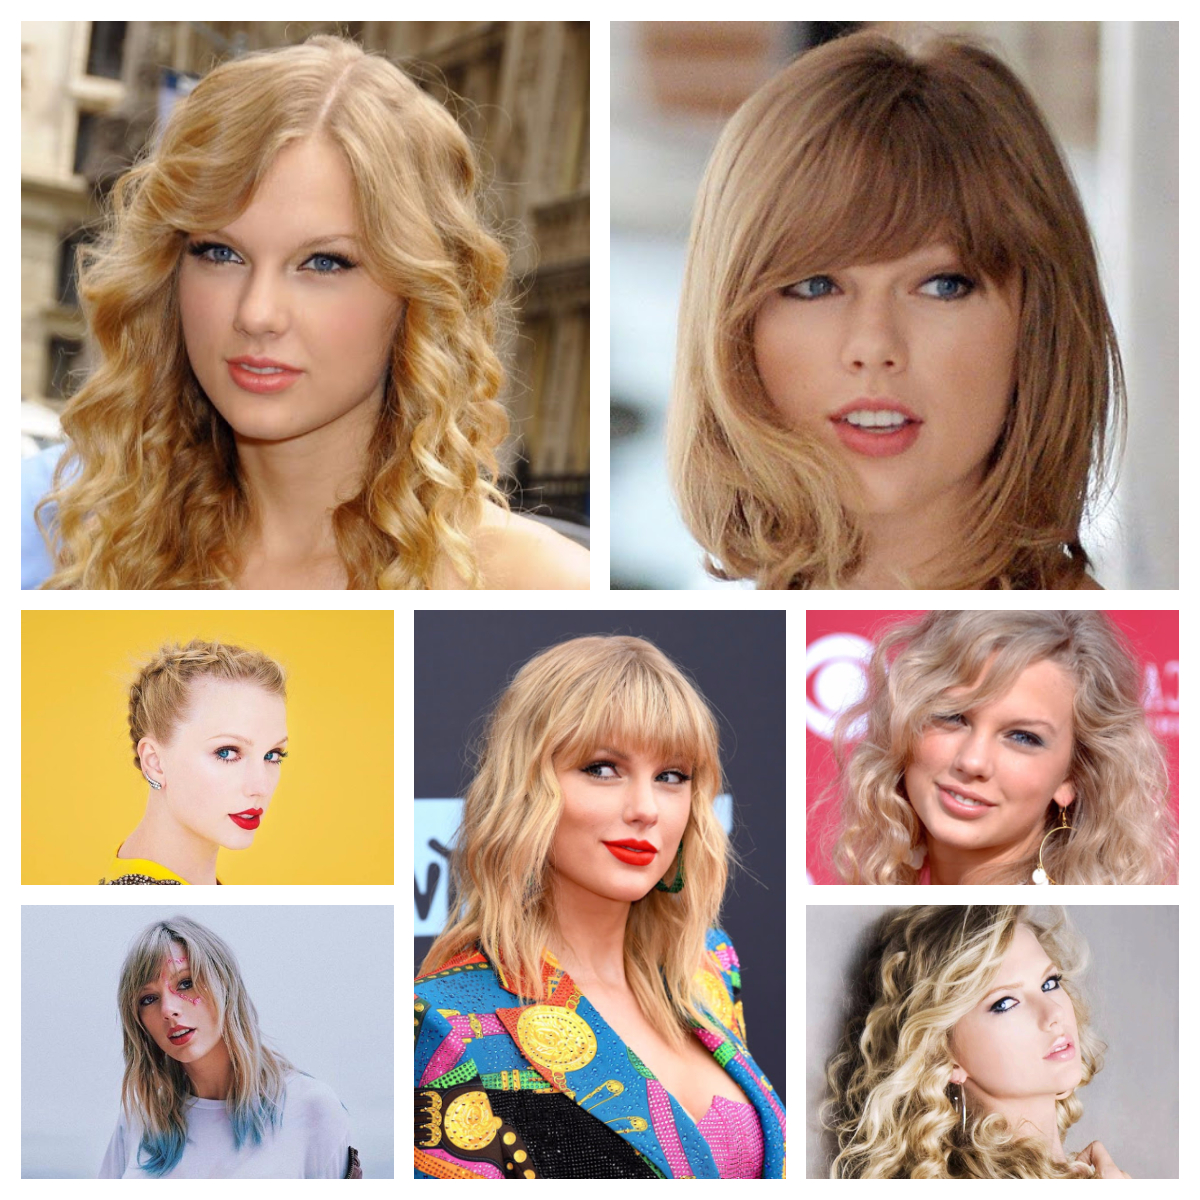 Taylor Swift Hairstyles Star Hairstyles